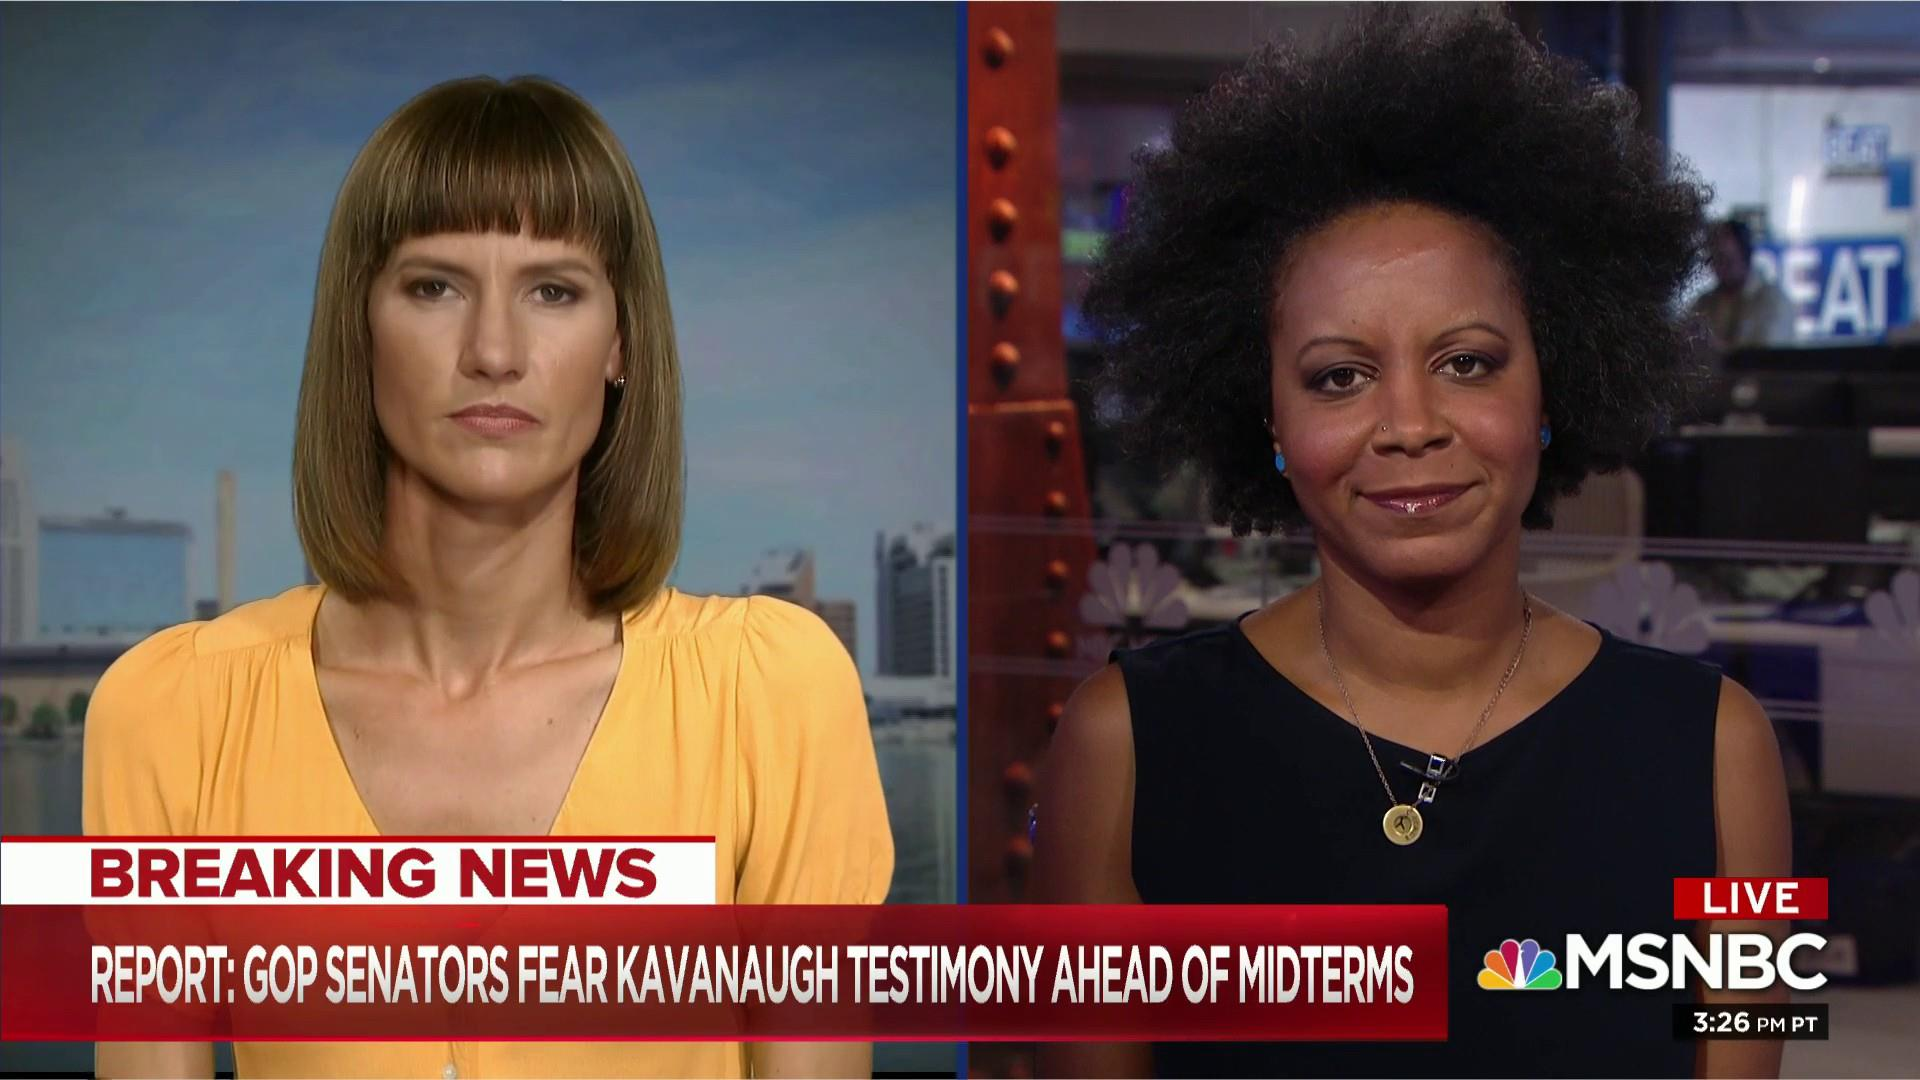 Trump accuser on Kavanaugh allegation: Once again GOP 'complicit'